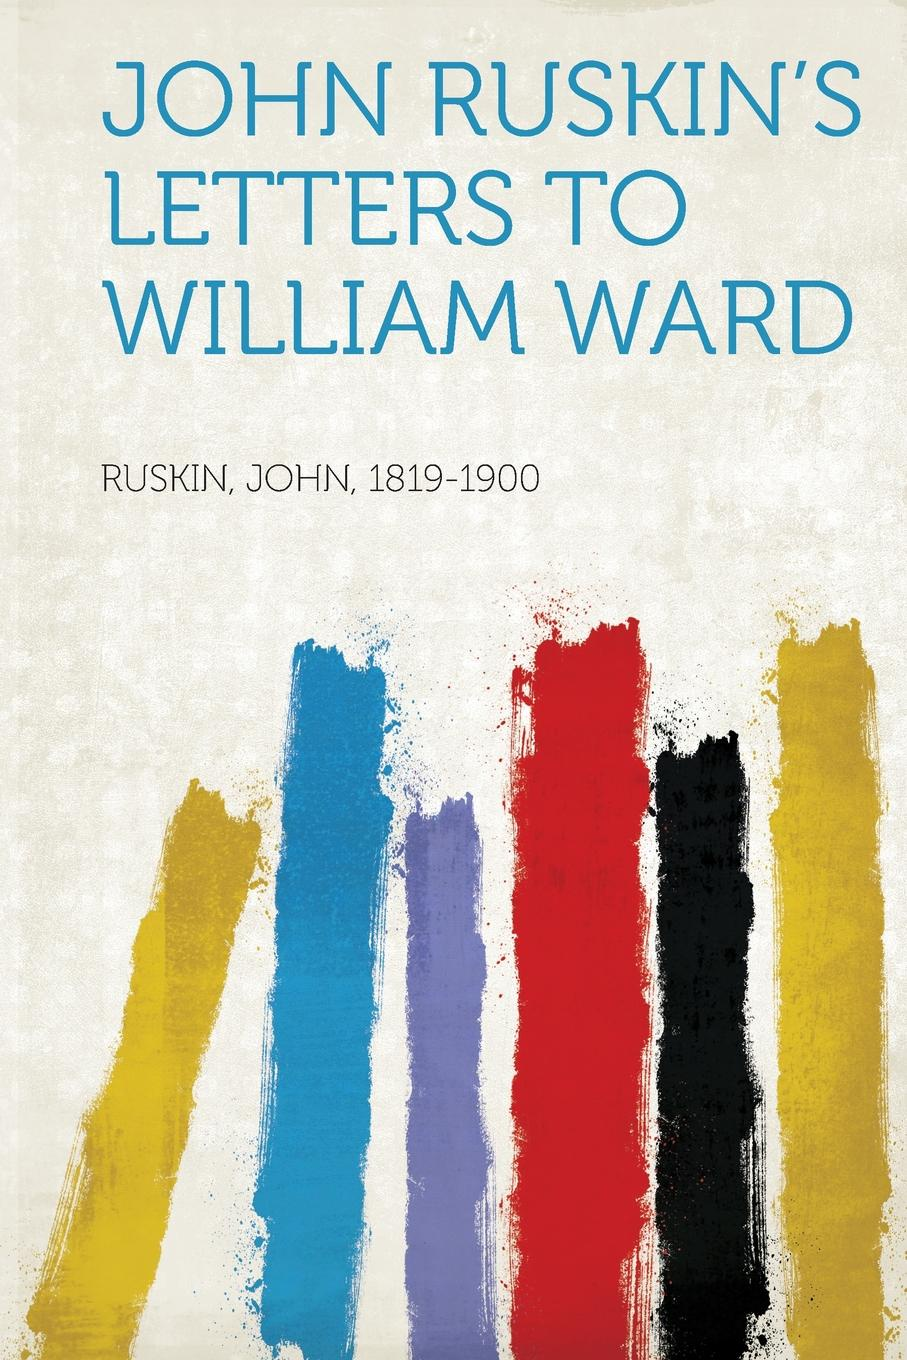 Ruskin John 1819-1900 R Letters to William Ward